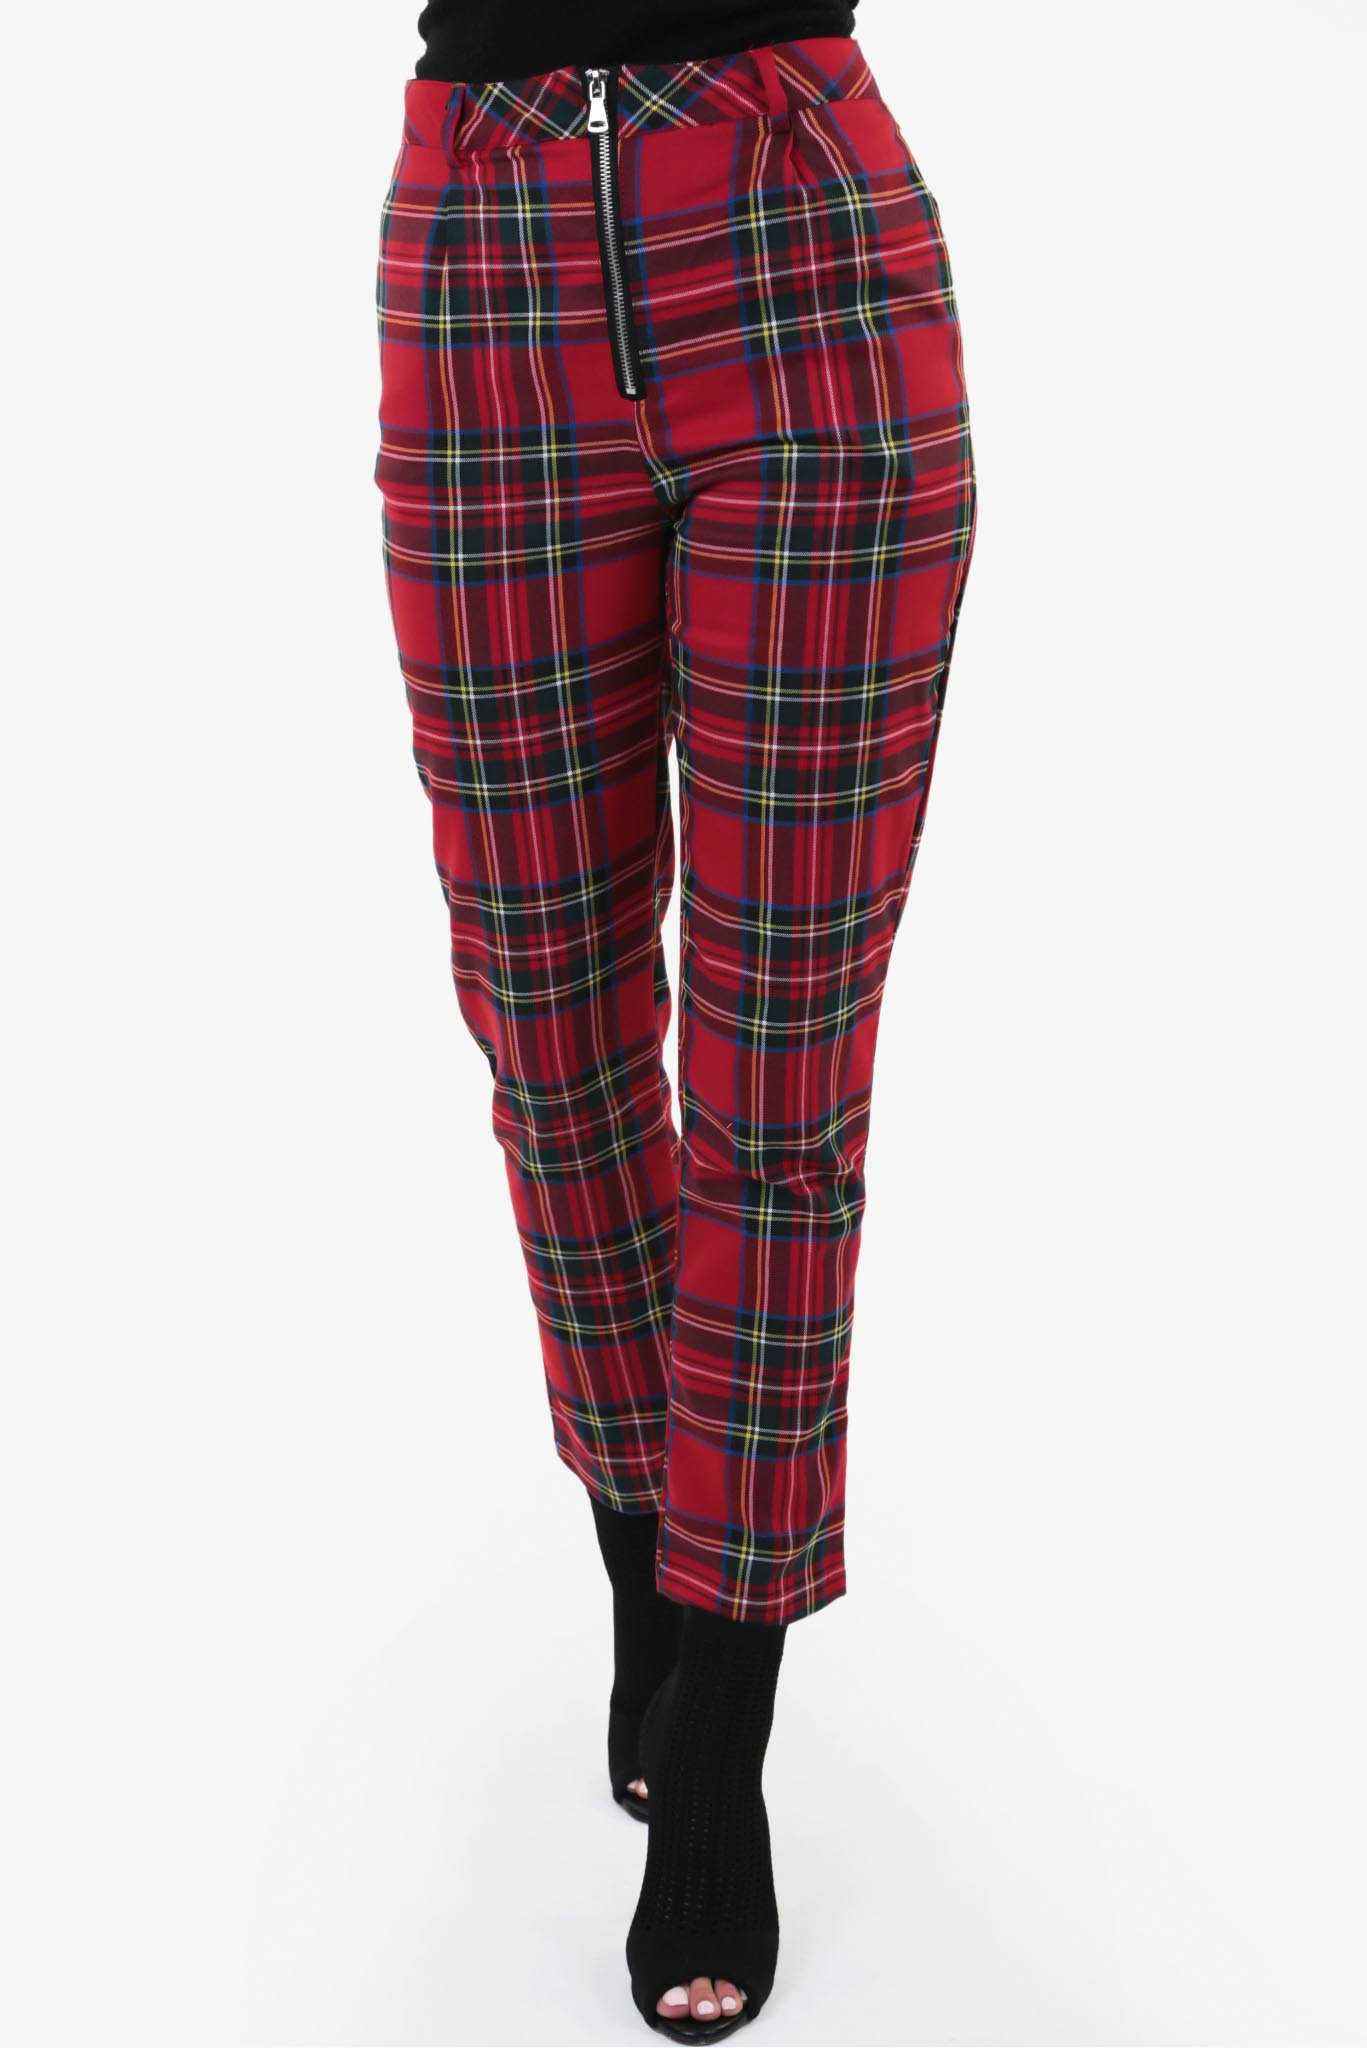 Tartan Check Pants - Red | Raw Orange